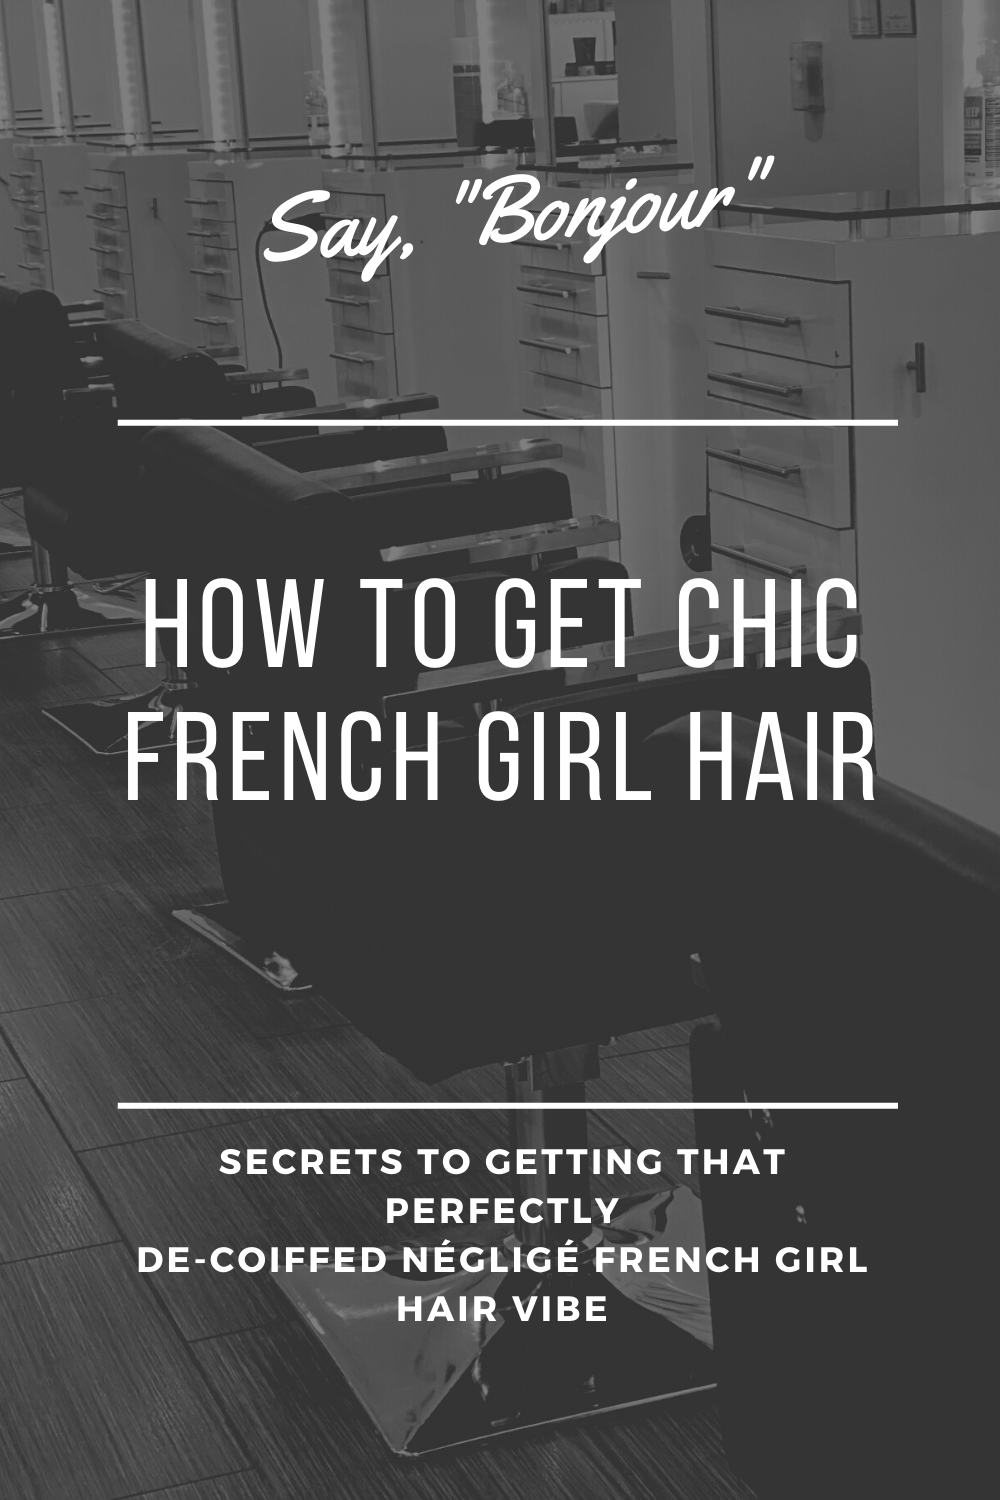 How to get chic french girl hair